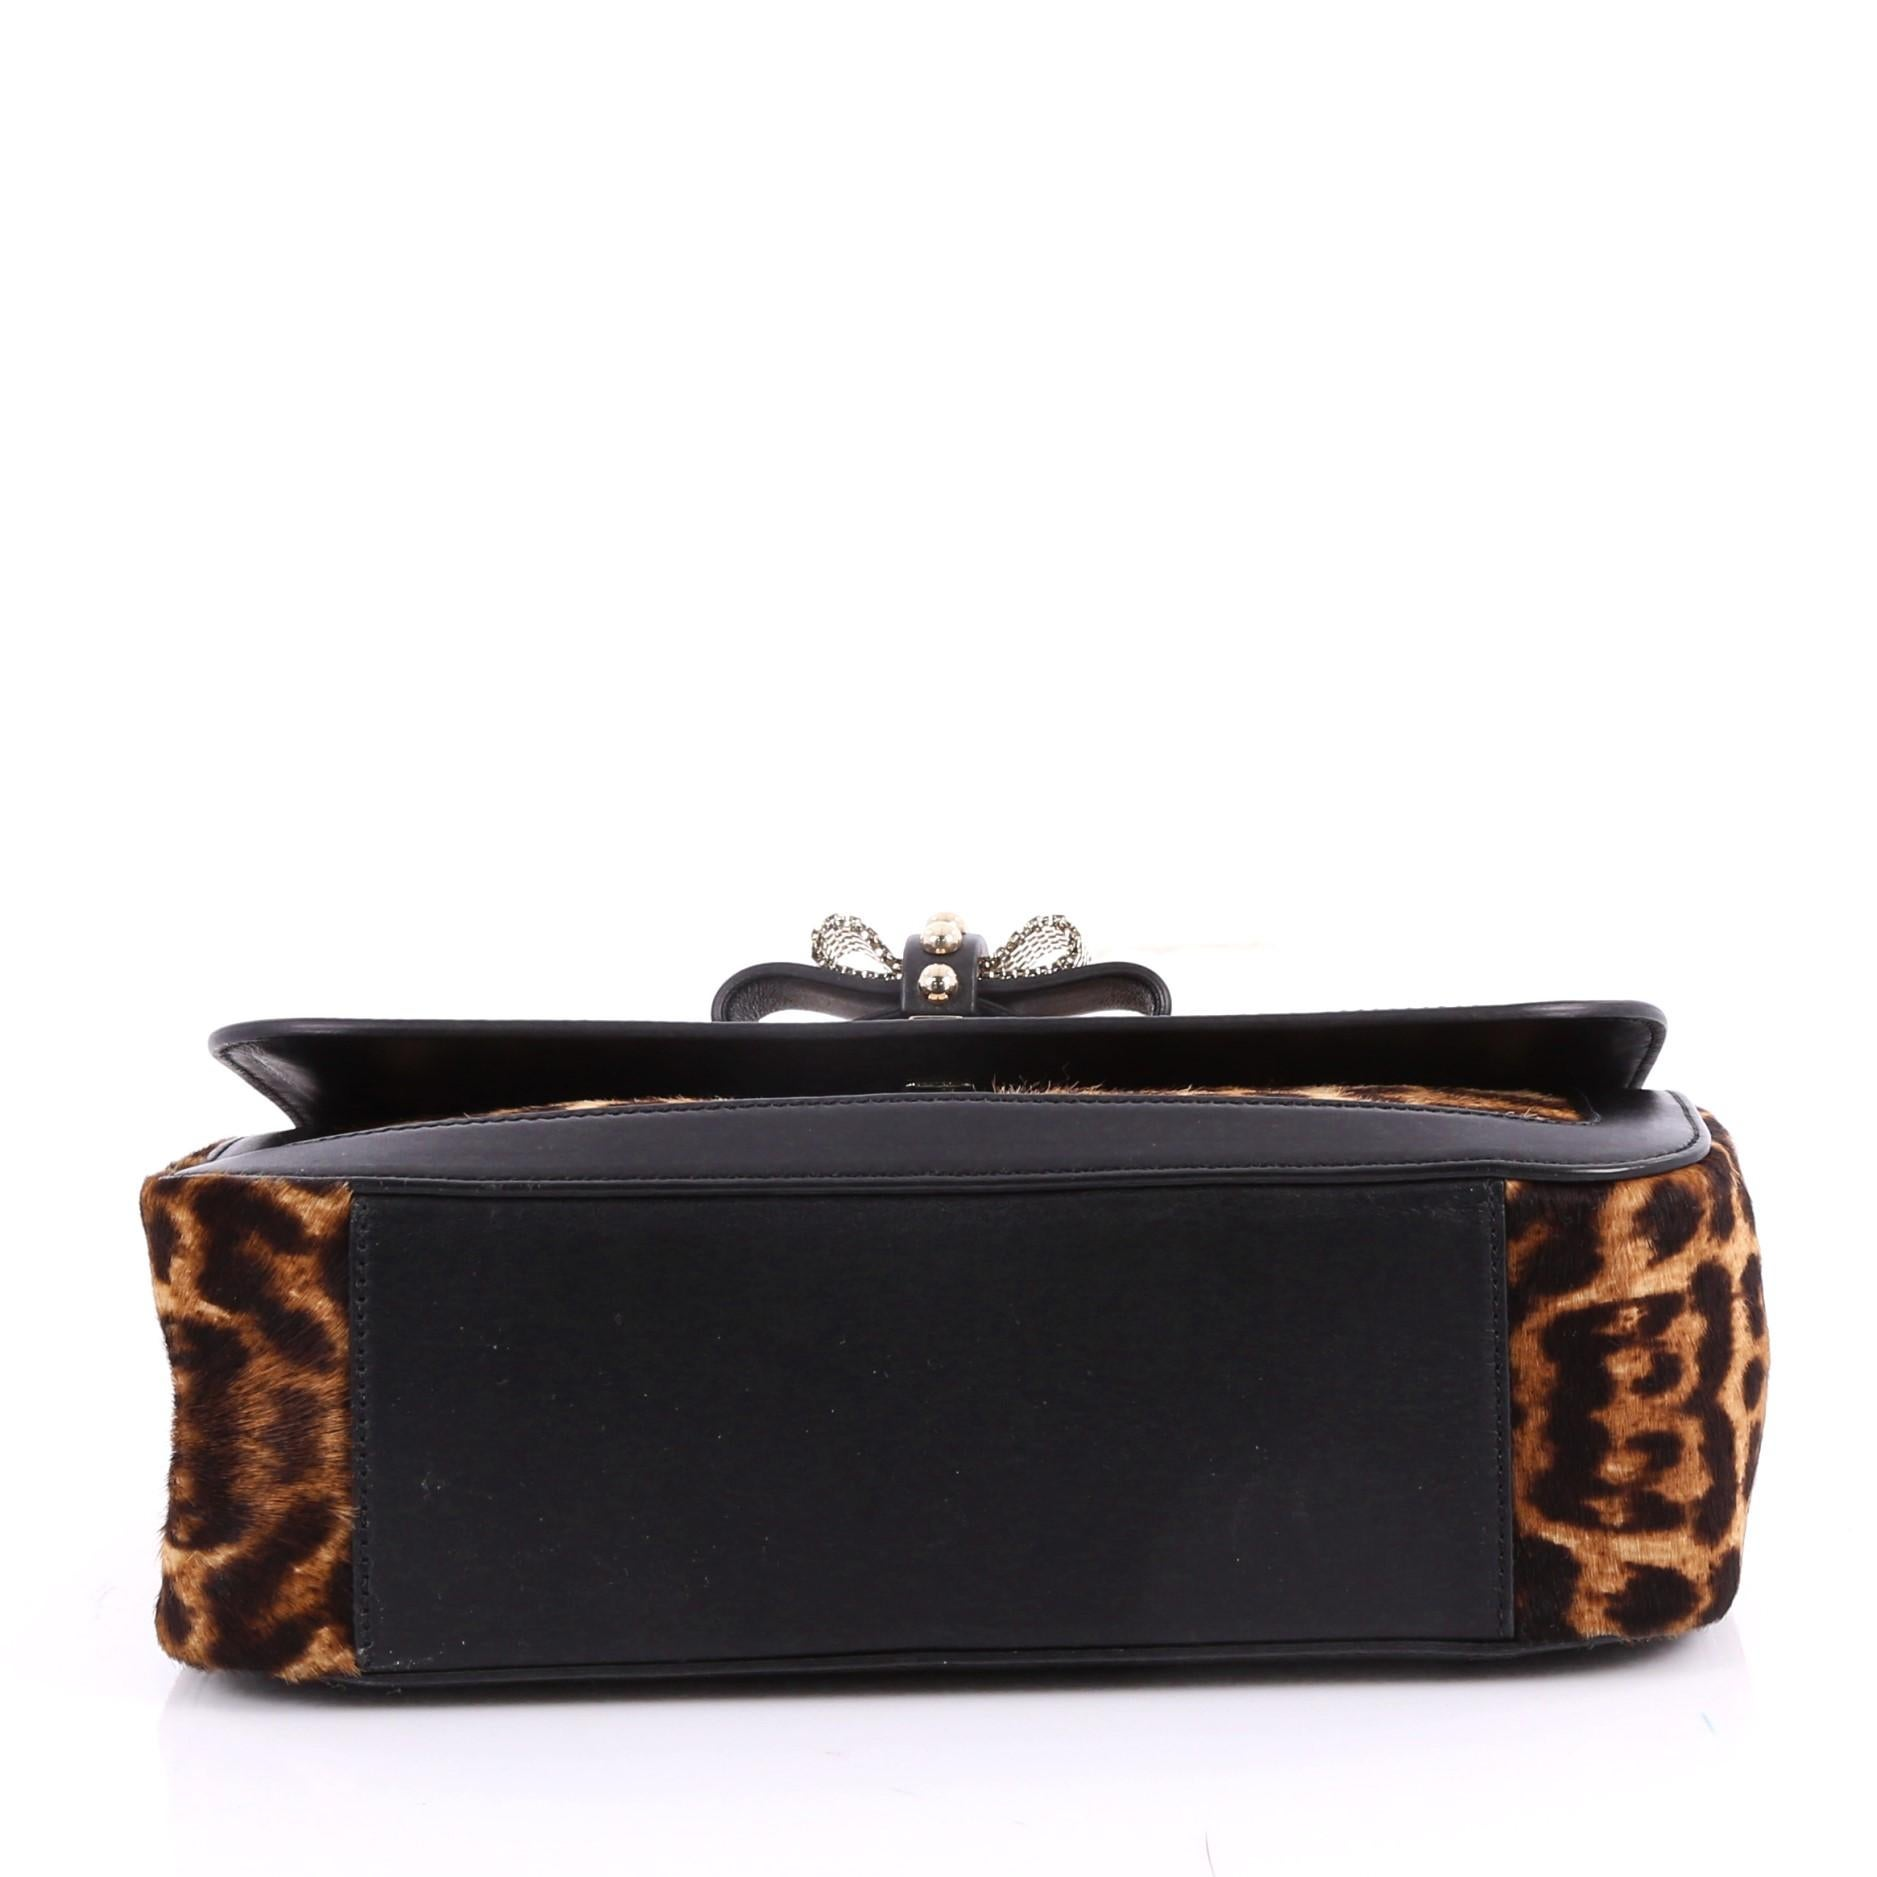 0de7c48843a8 Christian Louboutin Sweet Charity Shoulder Bag Pony Hair Small at 1stdibs